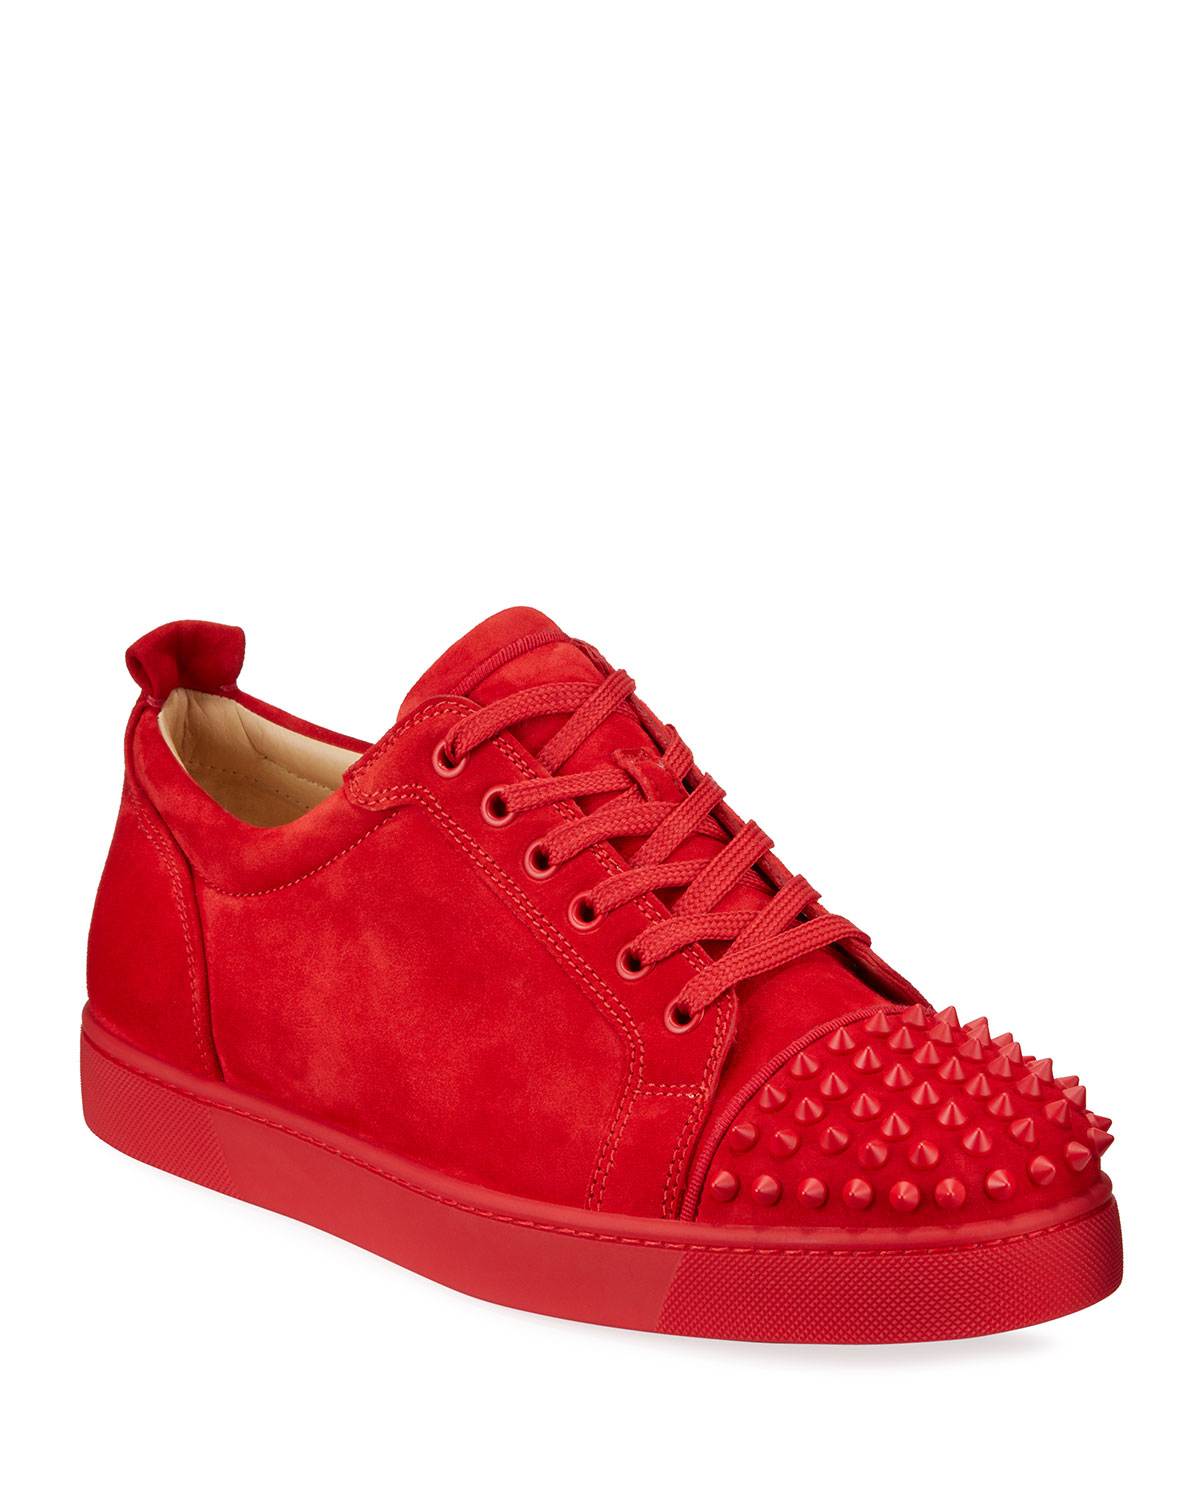 Louis Junior Spikes Red Sole Sneakers